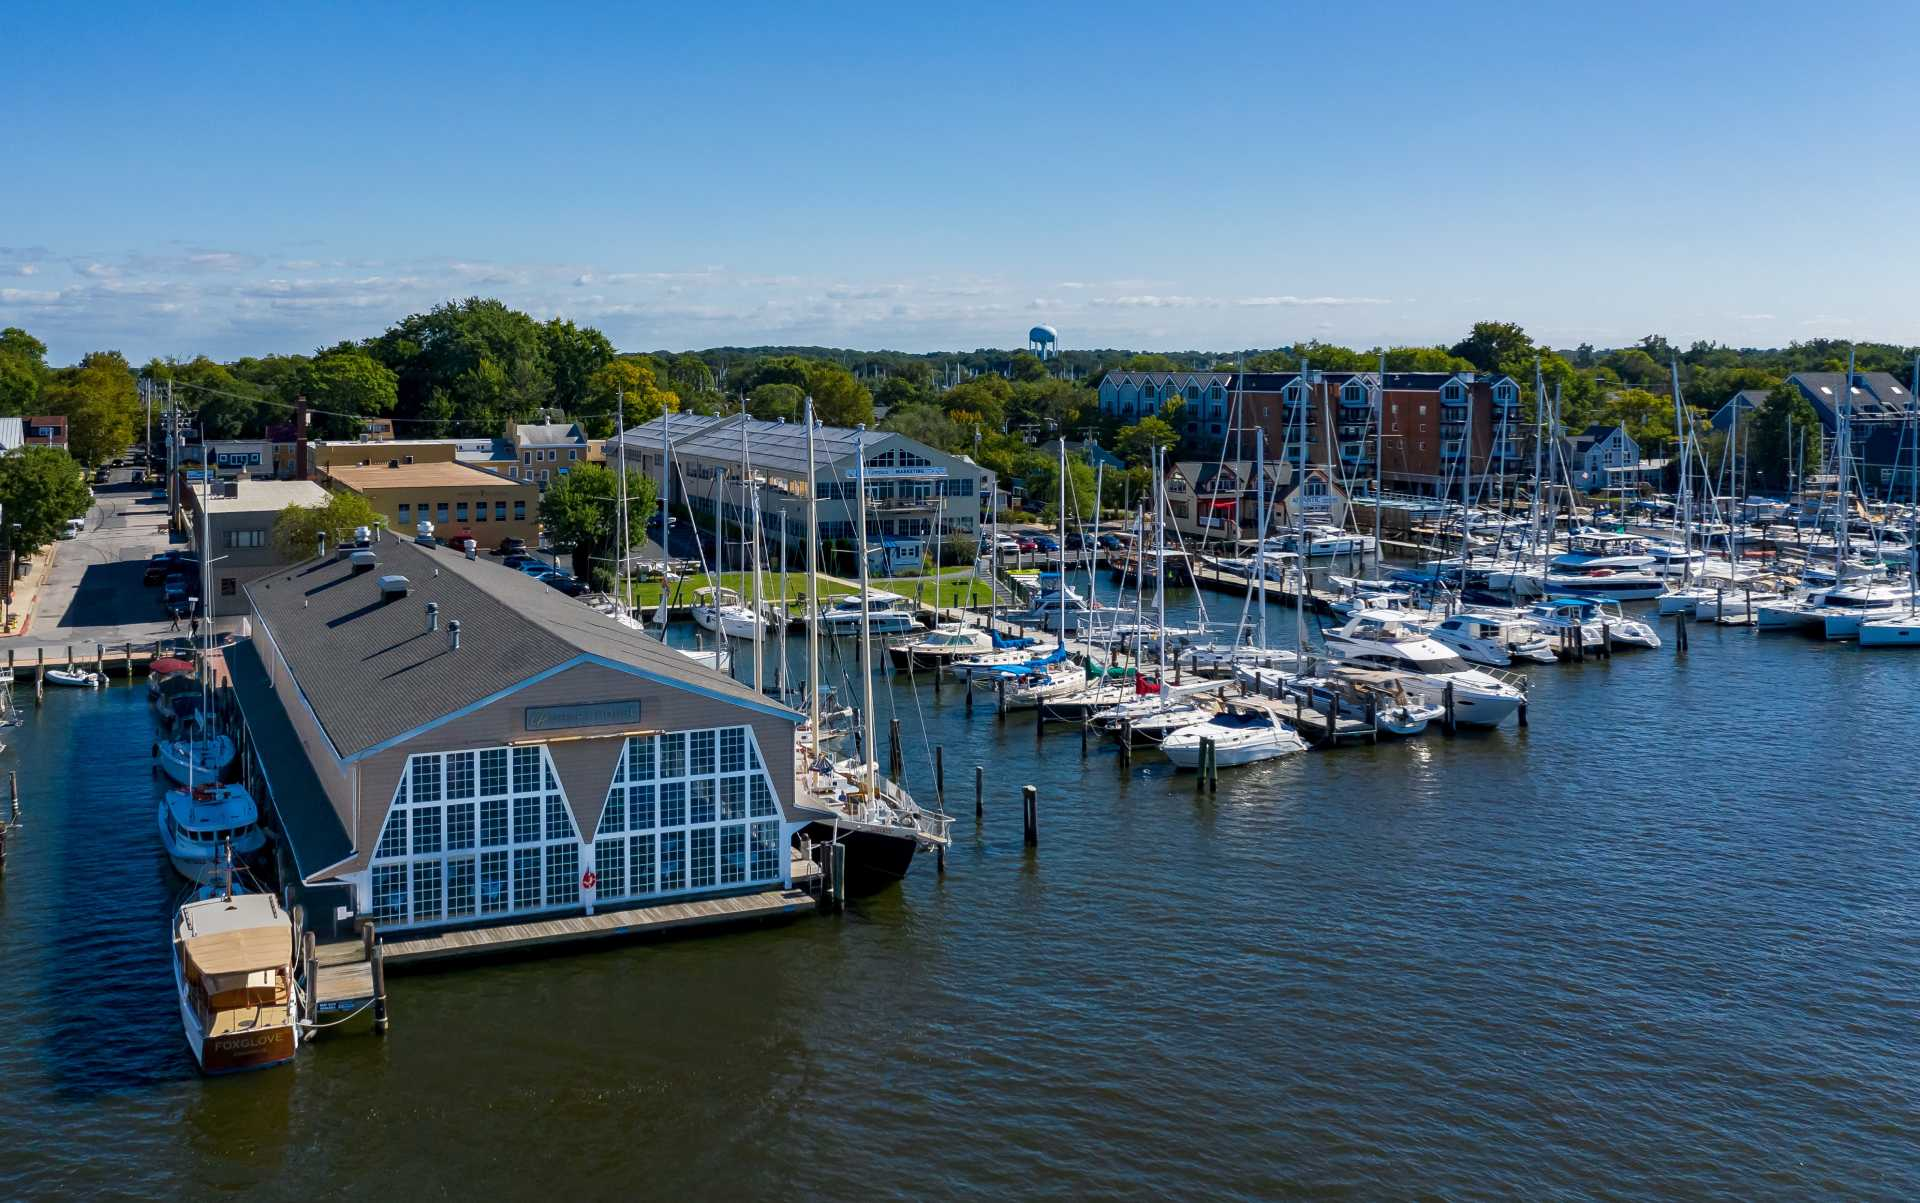 A lovely summer day at 222 Severn office complex and marina, waterfront property on Spa Creek across from Annapolis, Maryland.